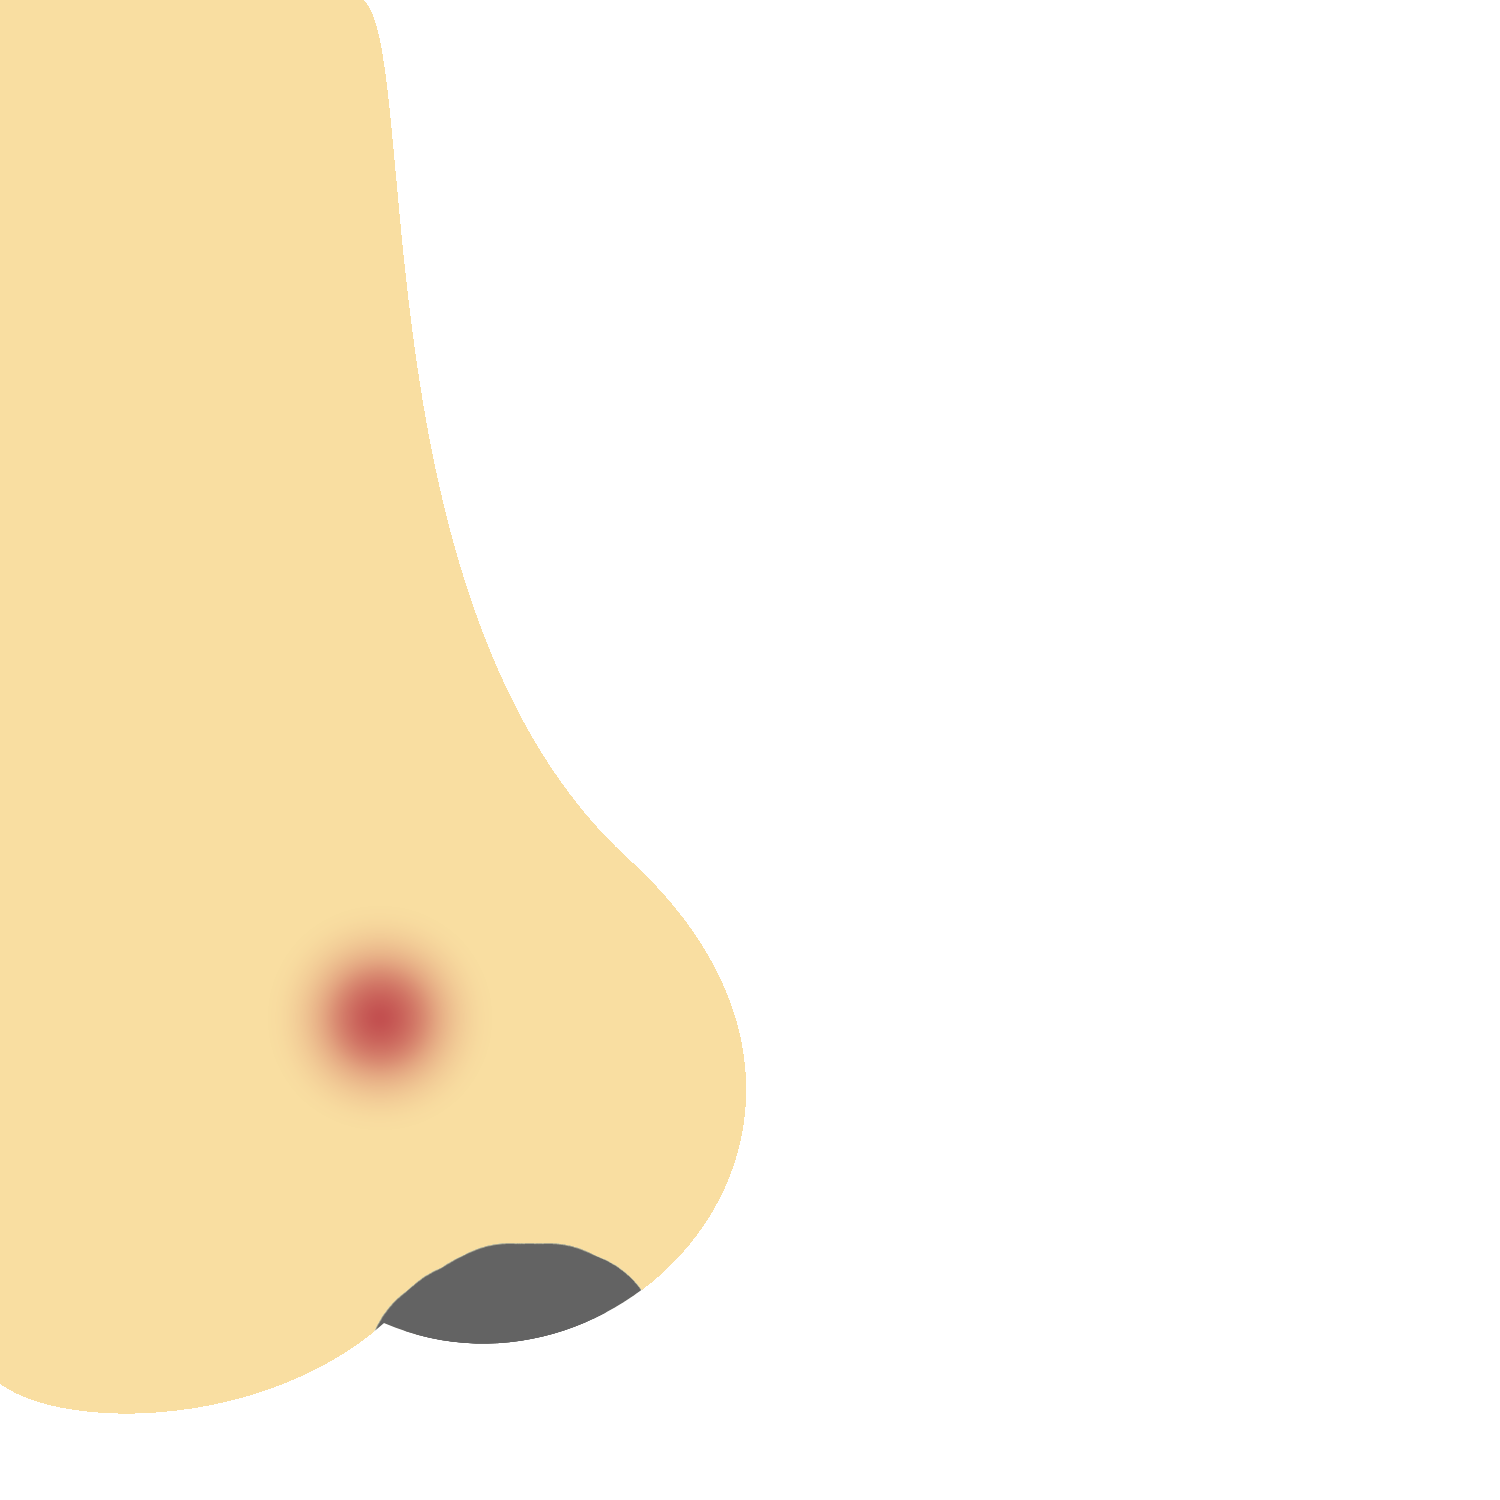 Nose with acne. Acne is caused by a unique set of characteristics for each person, so we create personalized acne fighting solutions and acne treatment.